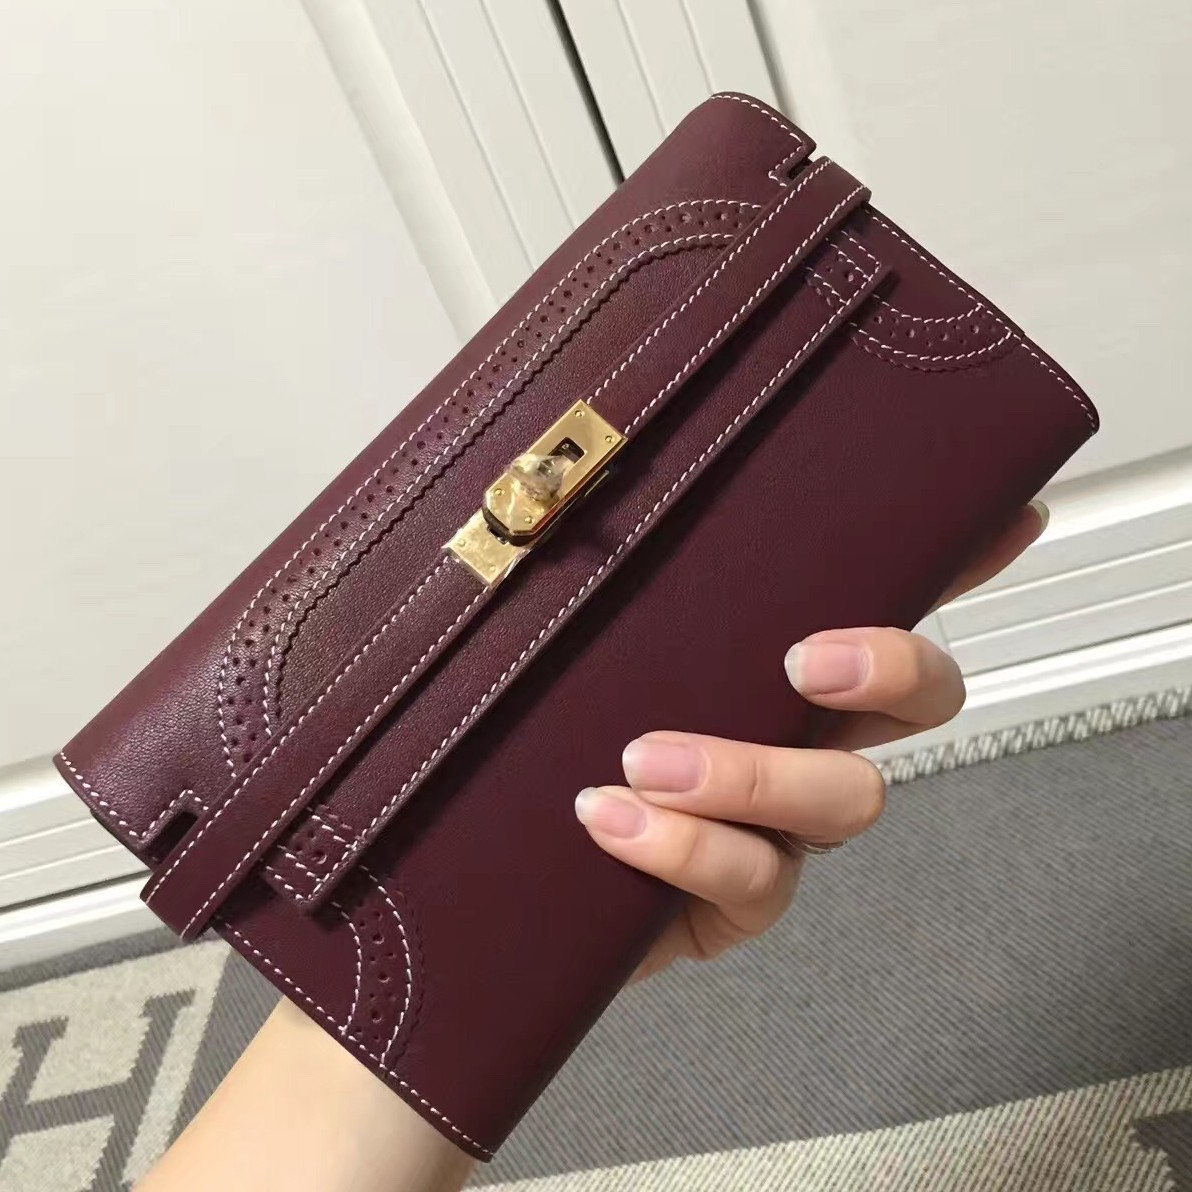 Replica High Quality Hermes Kelly Ghillies Wallet In Bordeaux Swift Leather